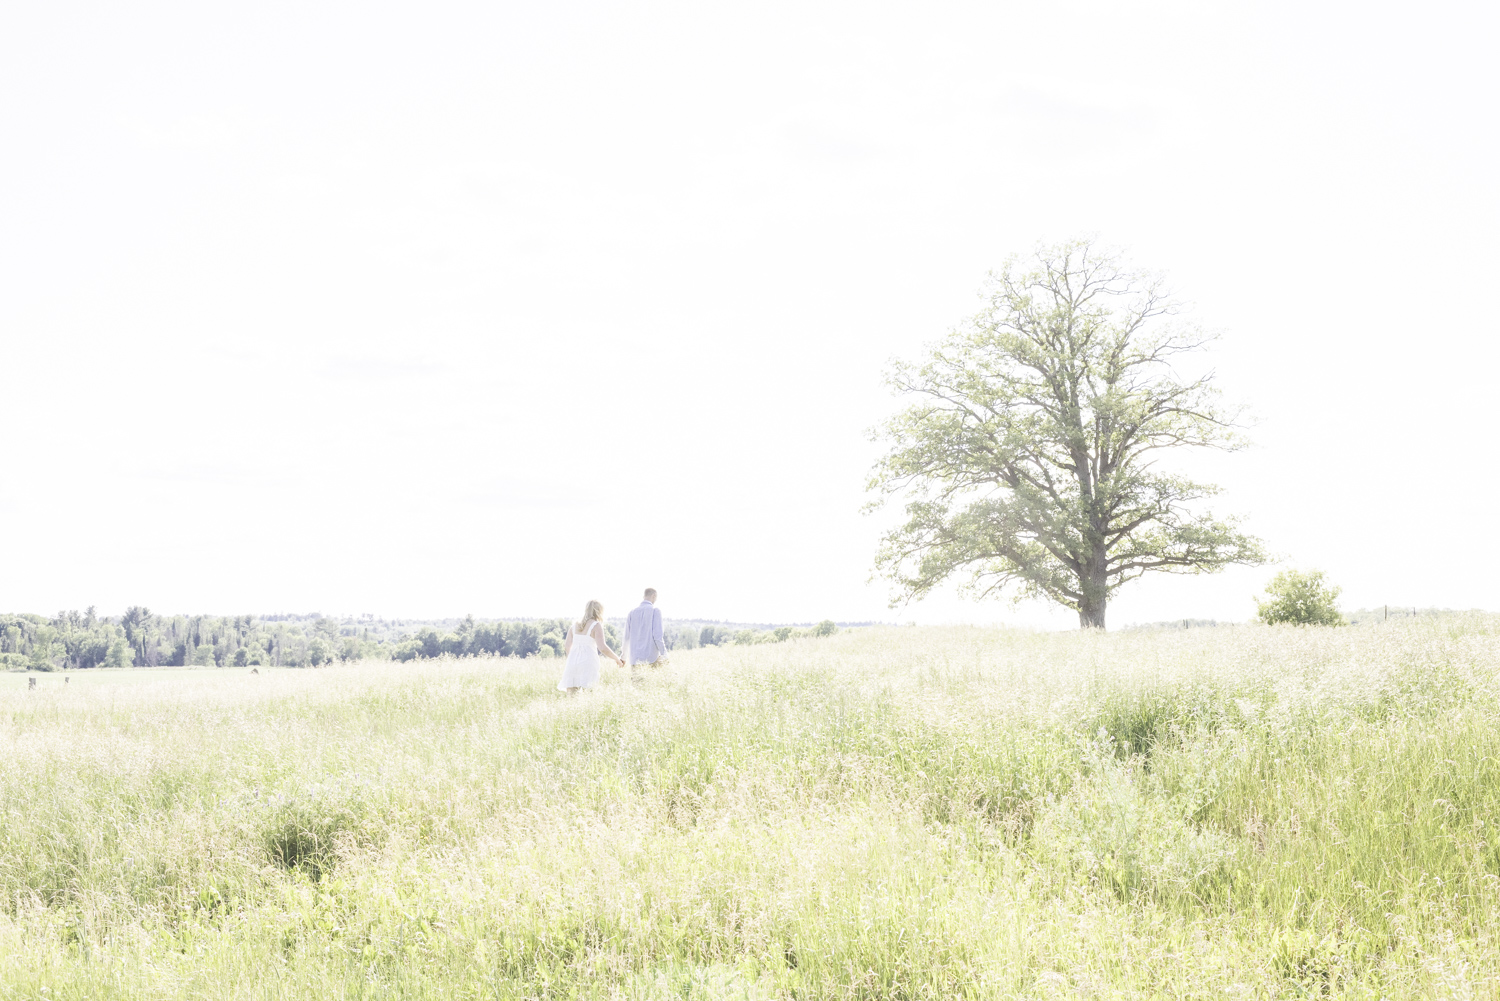 An overexposed photo of a couple walking through a field towards a tree